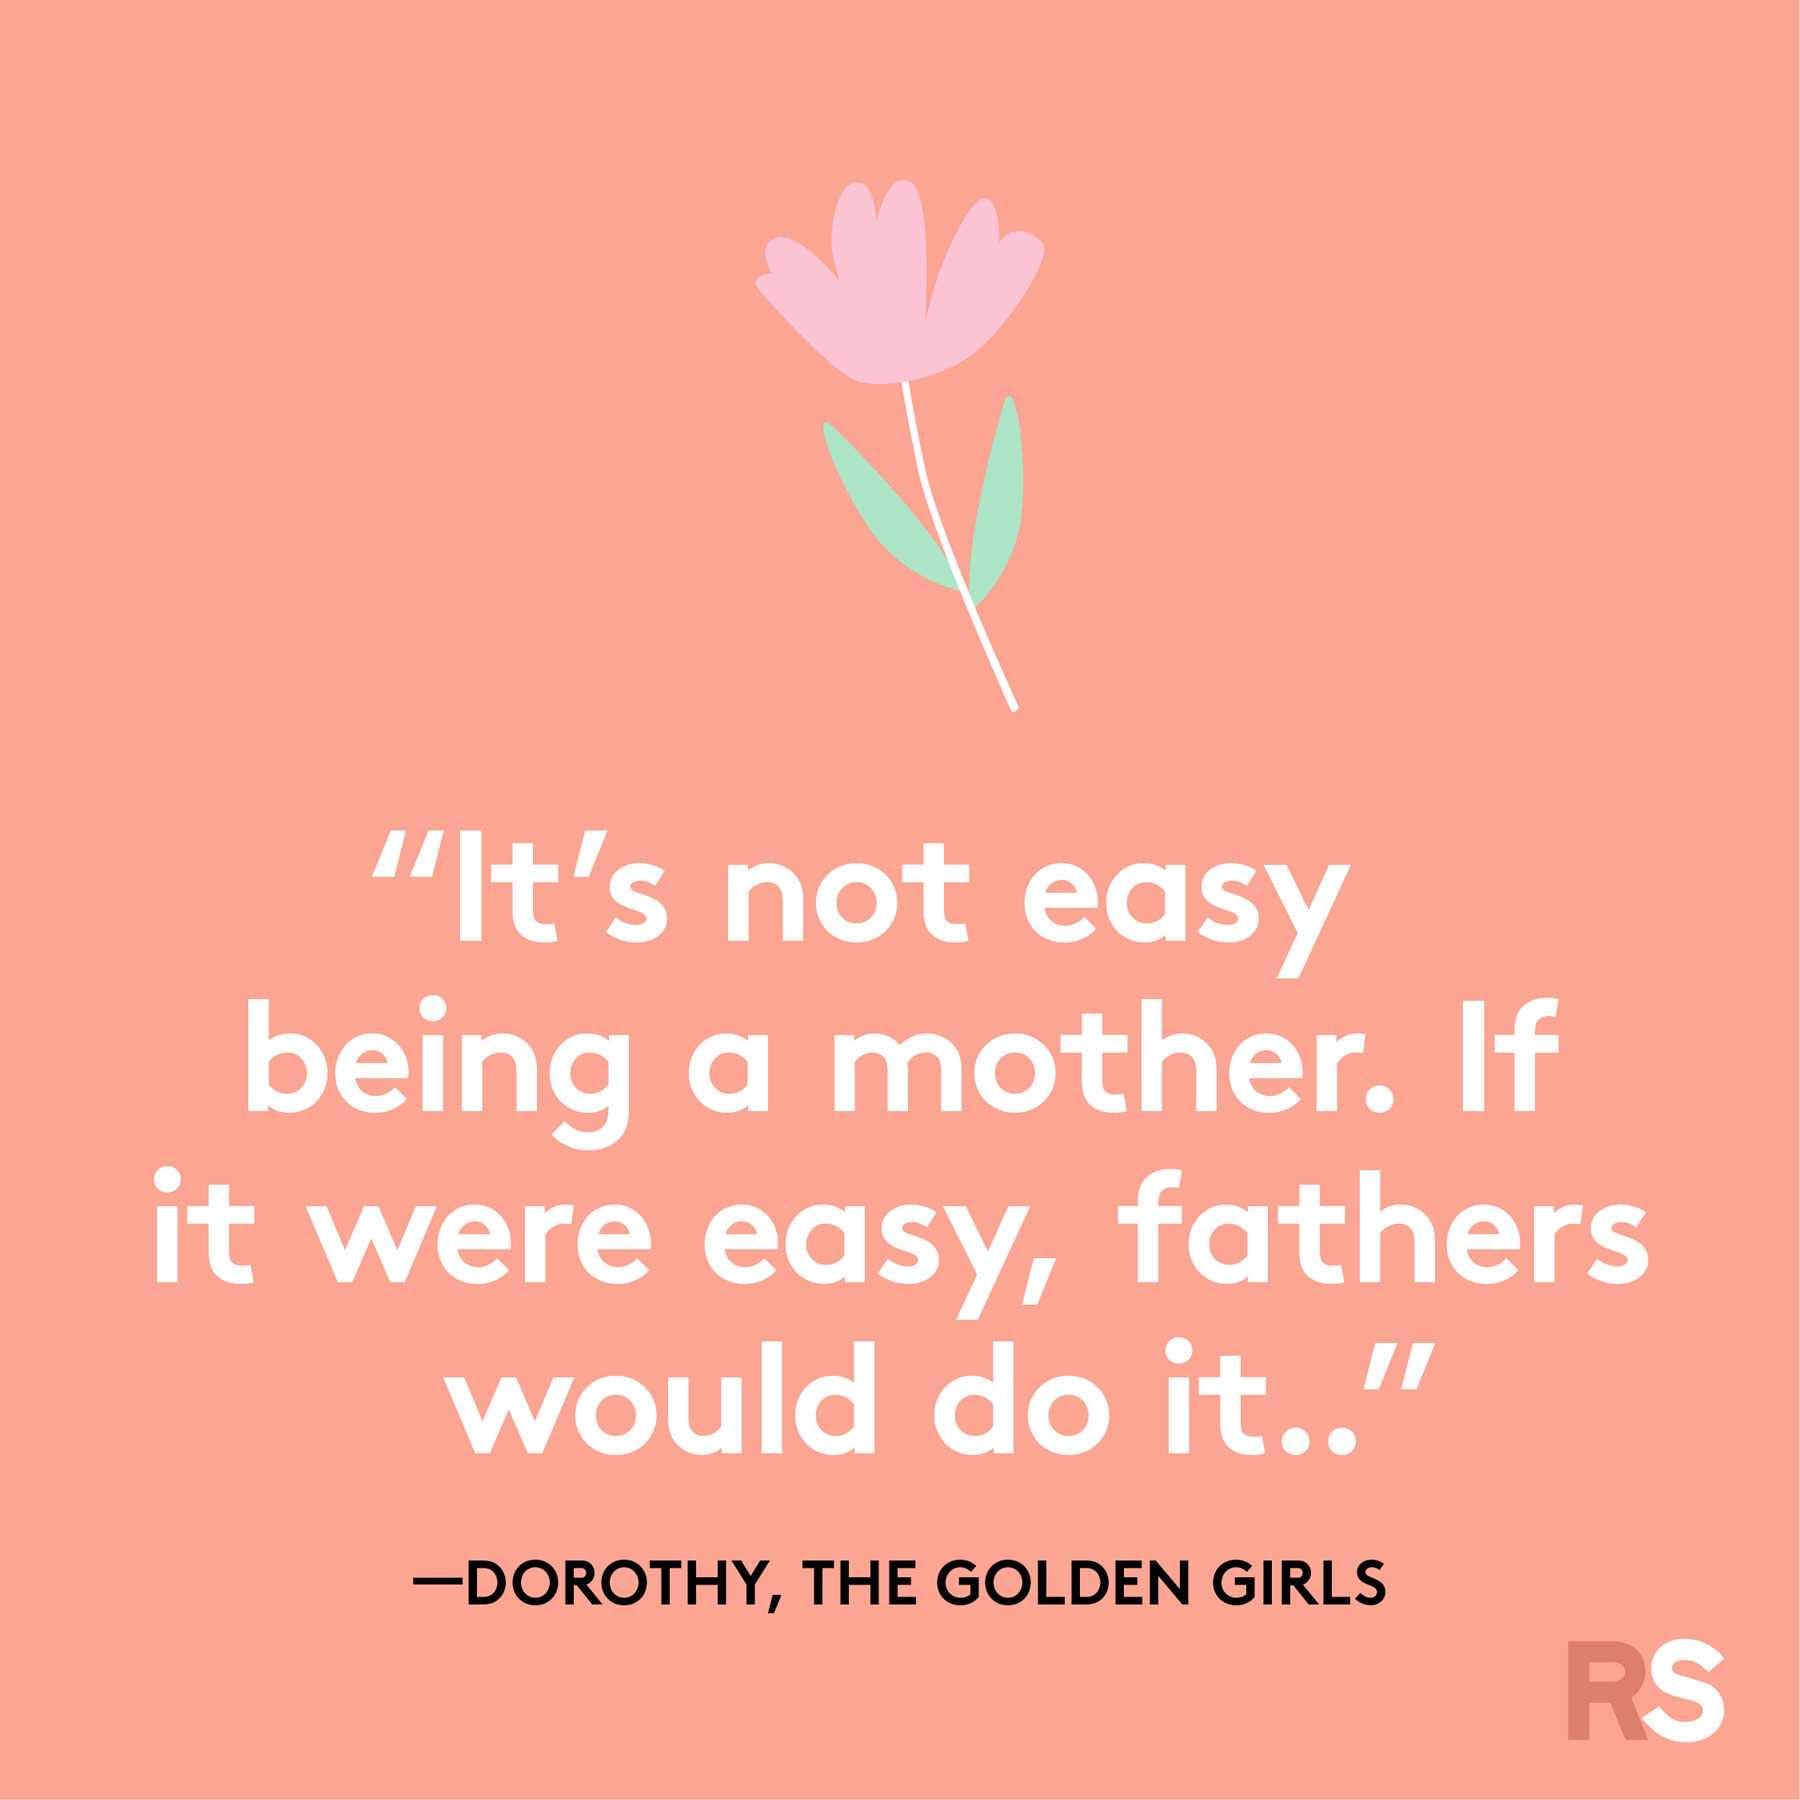 Mother's Day Quotes and Sayings: Funny, Inspirational, Happy ...